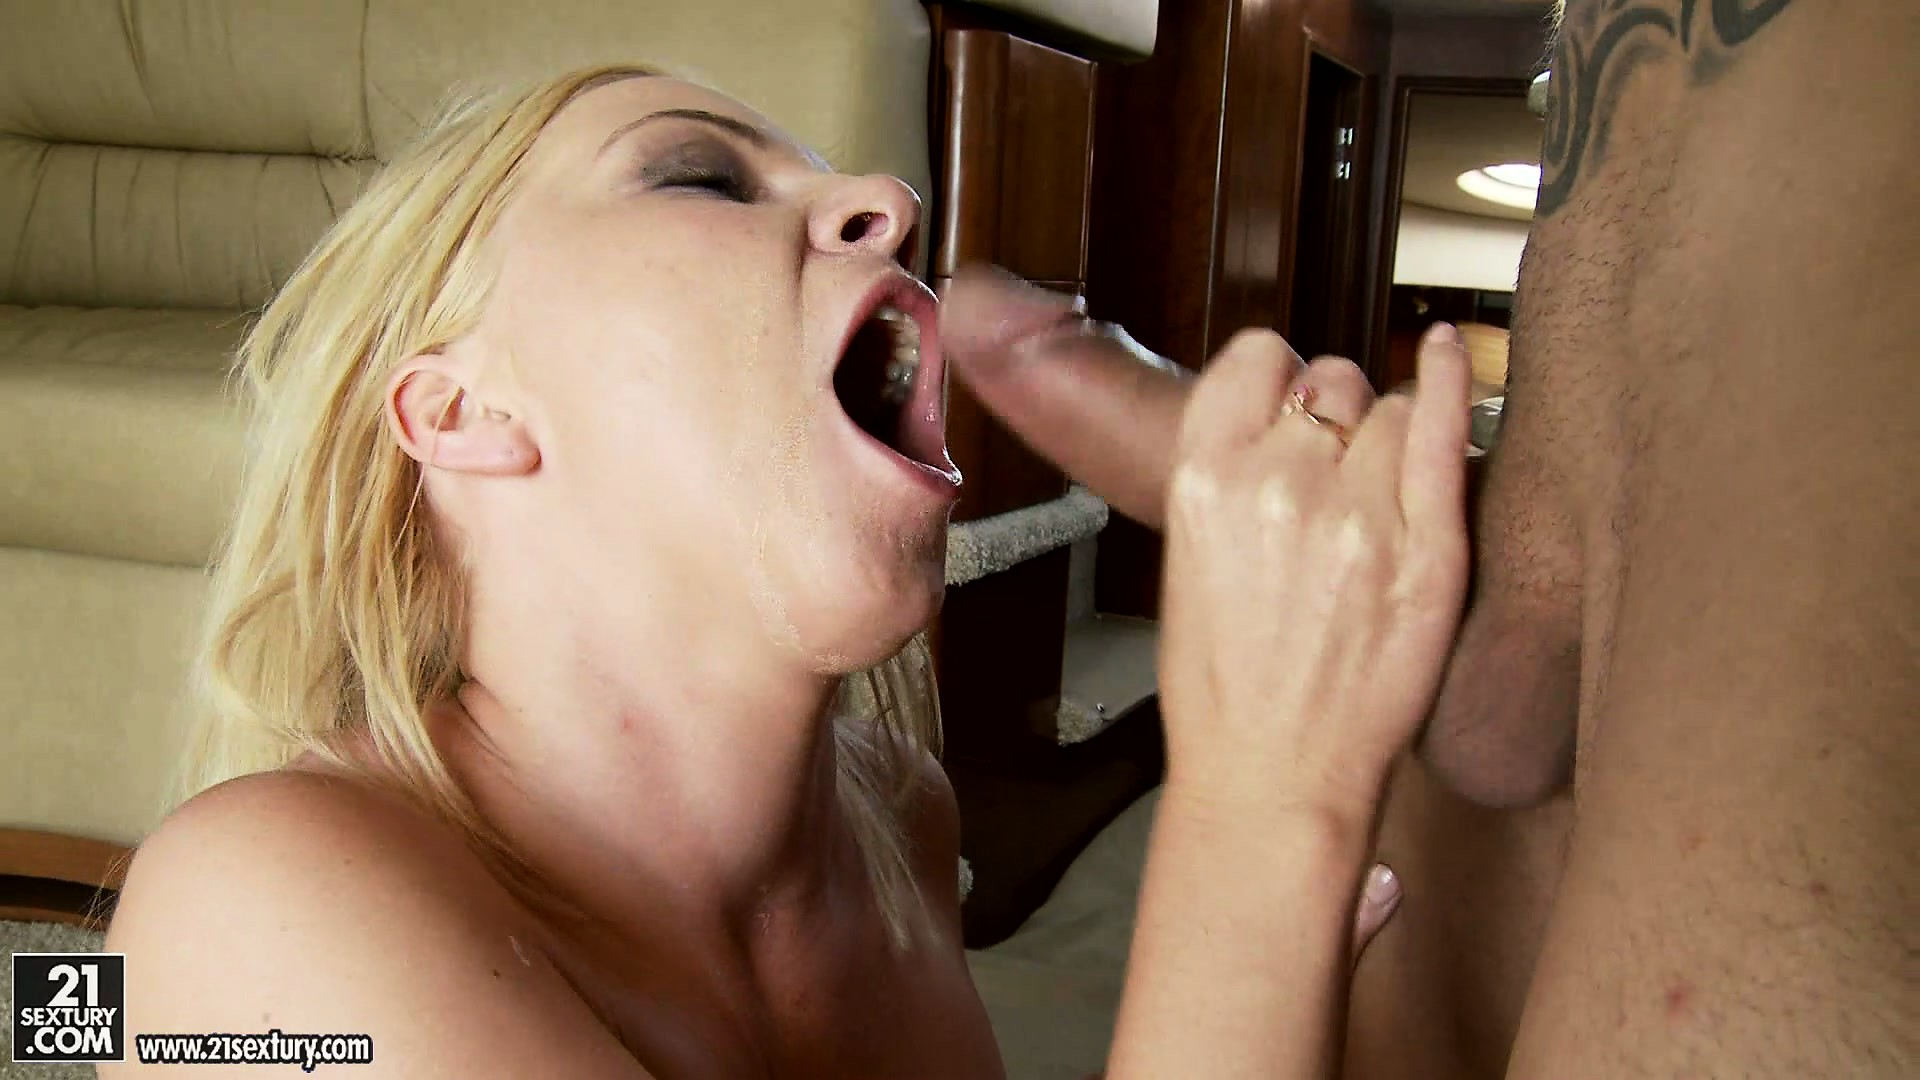 Porn Tube of He Pumps Her Asshole, Rides It Hard And She Goes Ass To Mouth For Cum